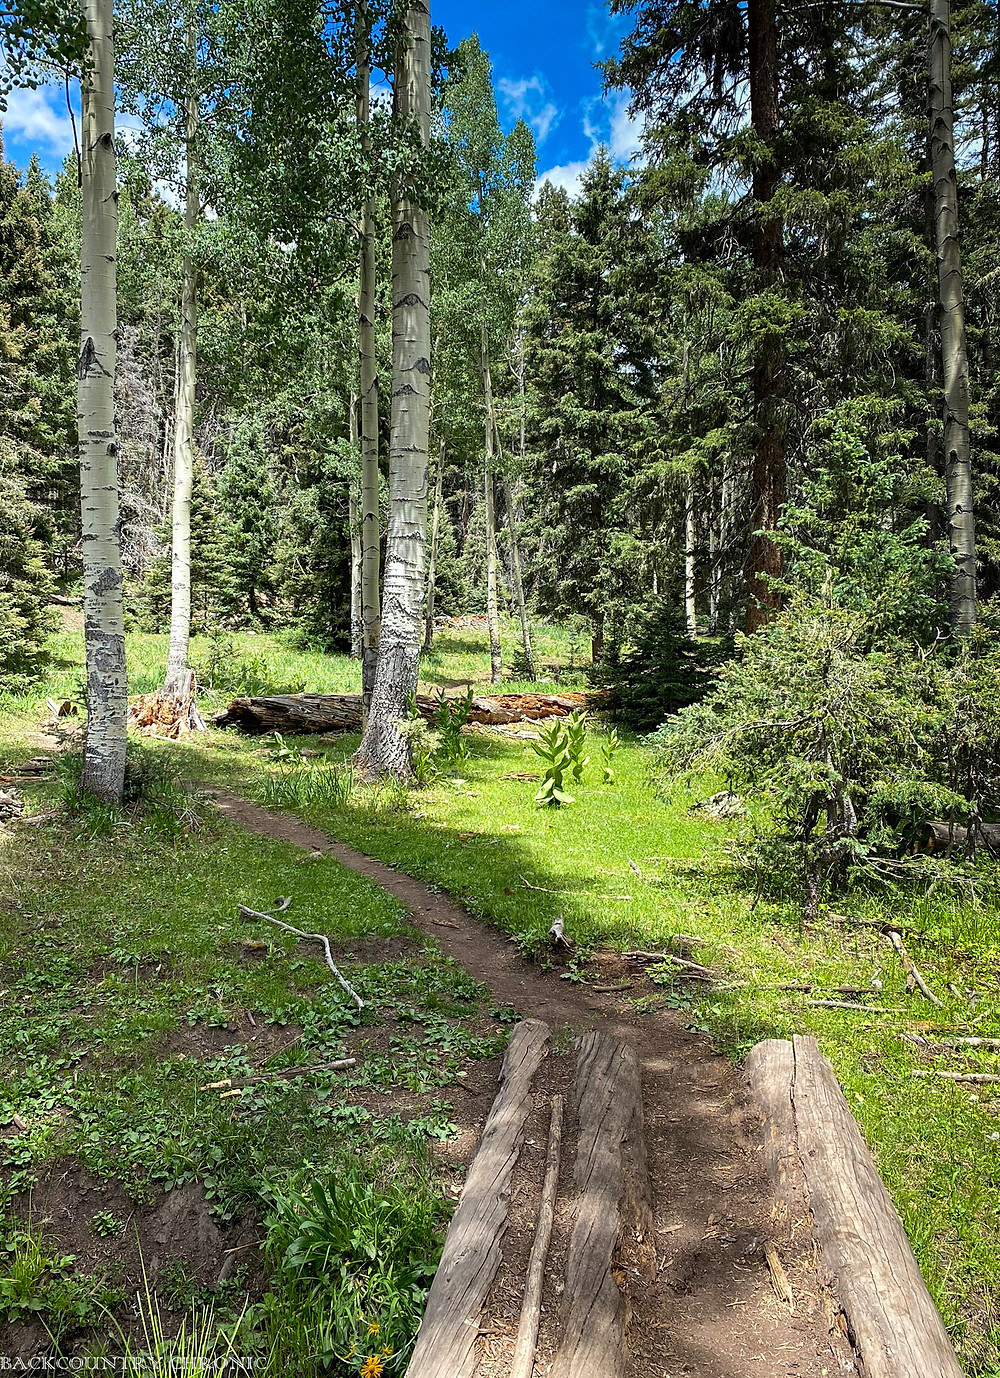 A trail through the wilderness area